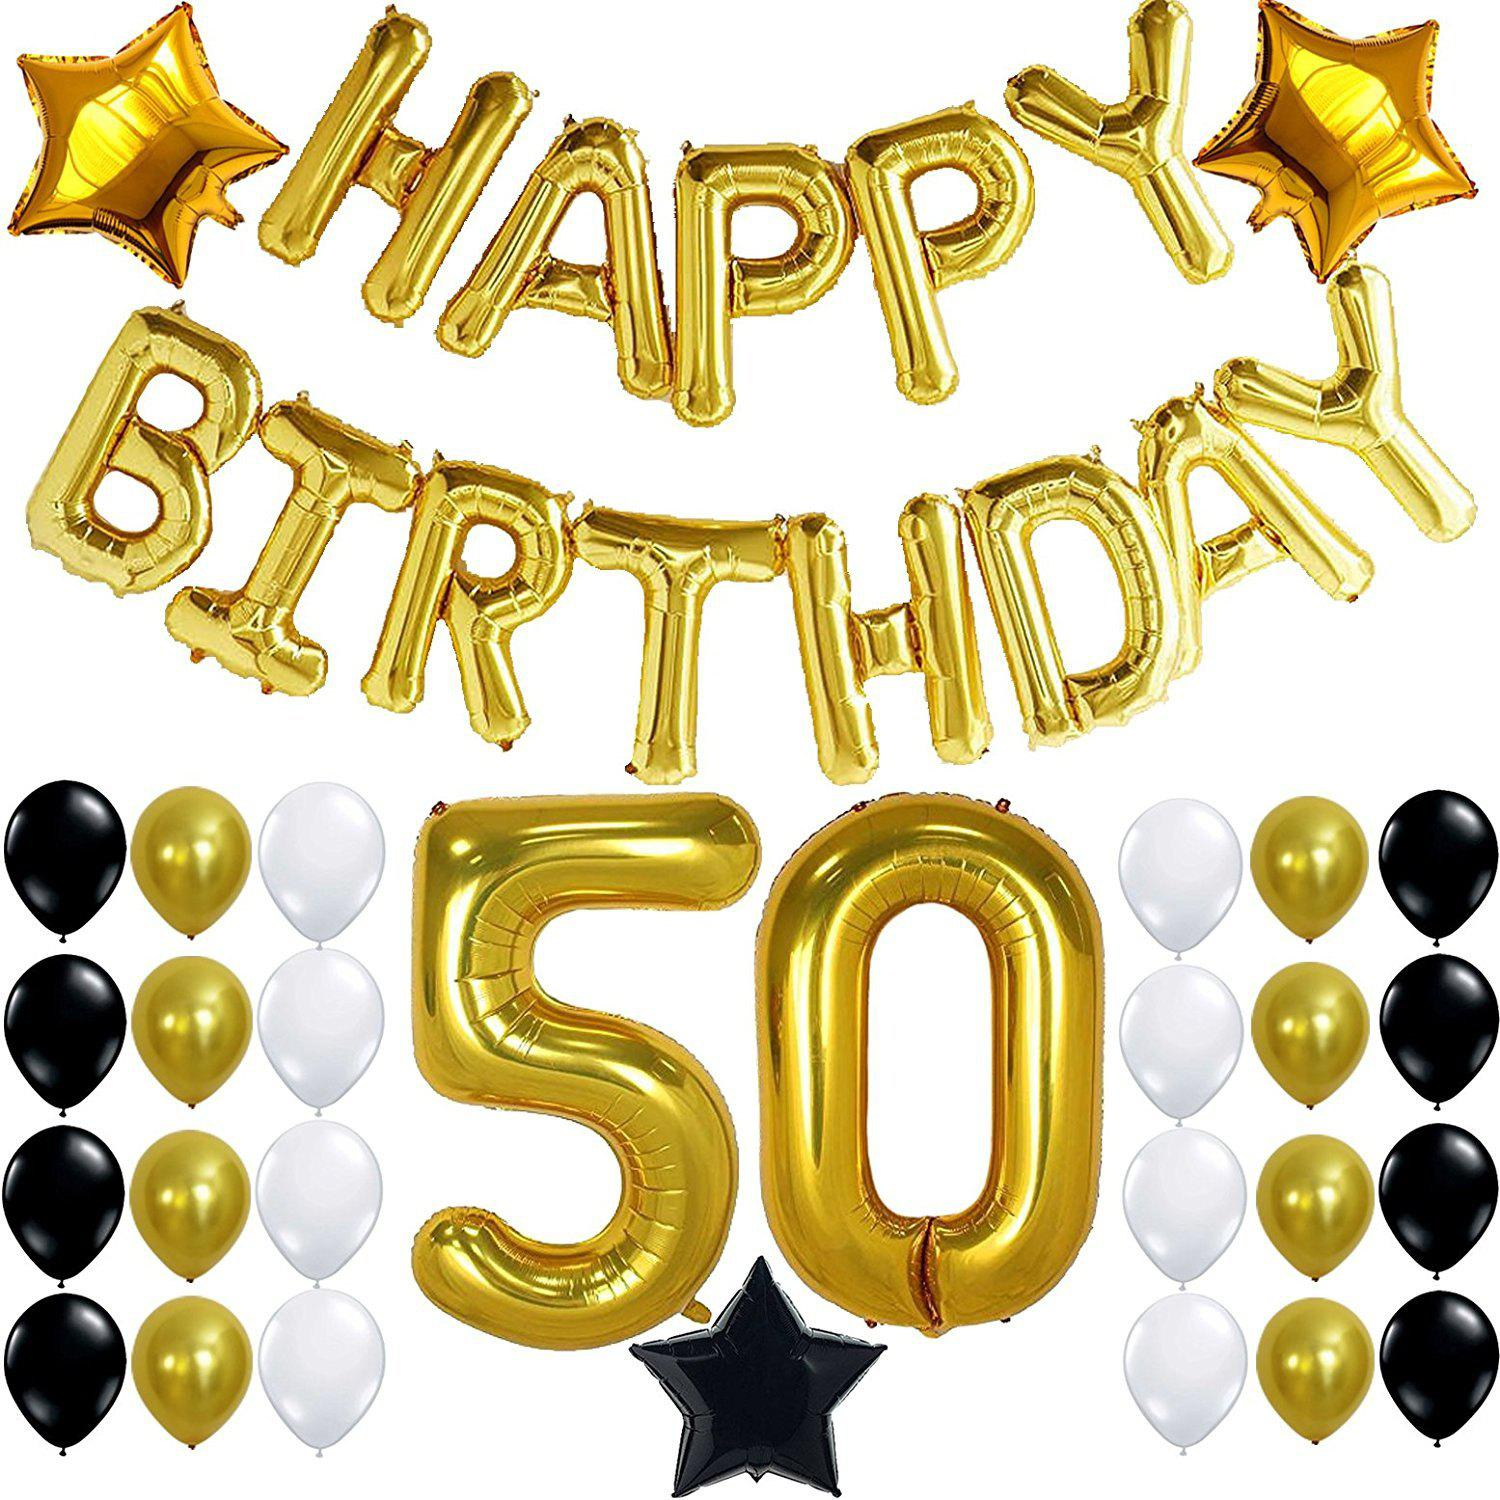 Store 50th BIRTHDAY PARTY DECORATIONS KIT Happy Birthday Foil Balloons 50 Number Balloon Gold Balck